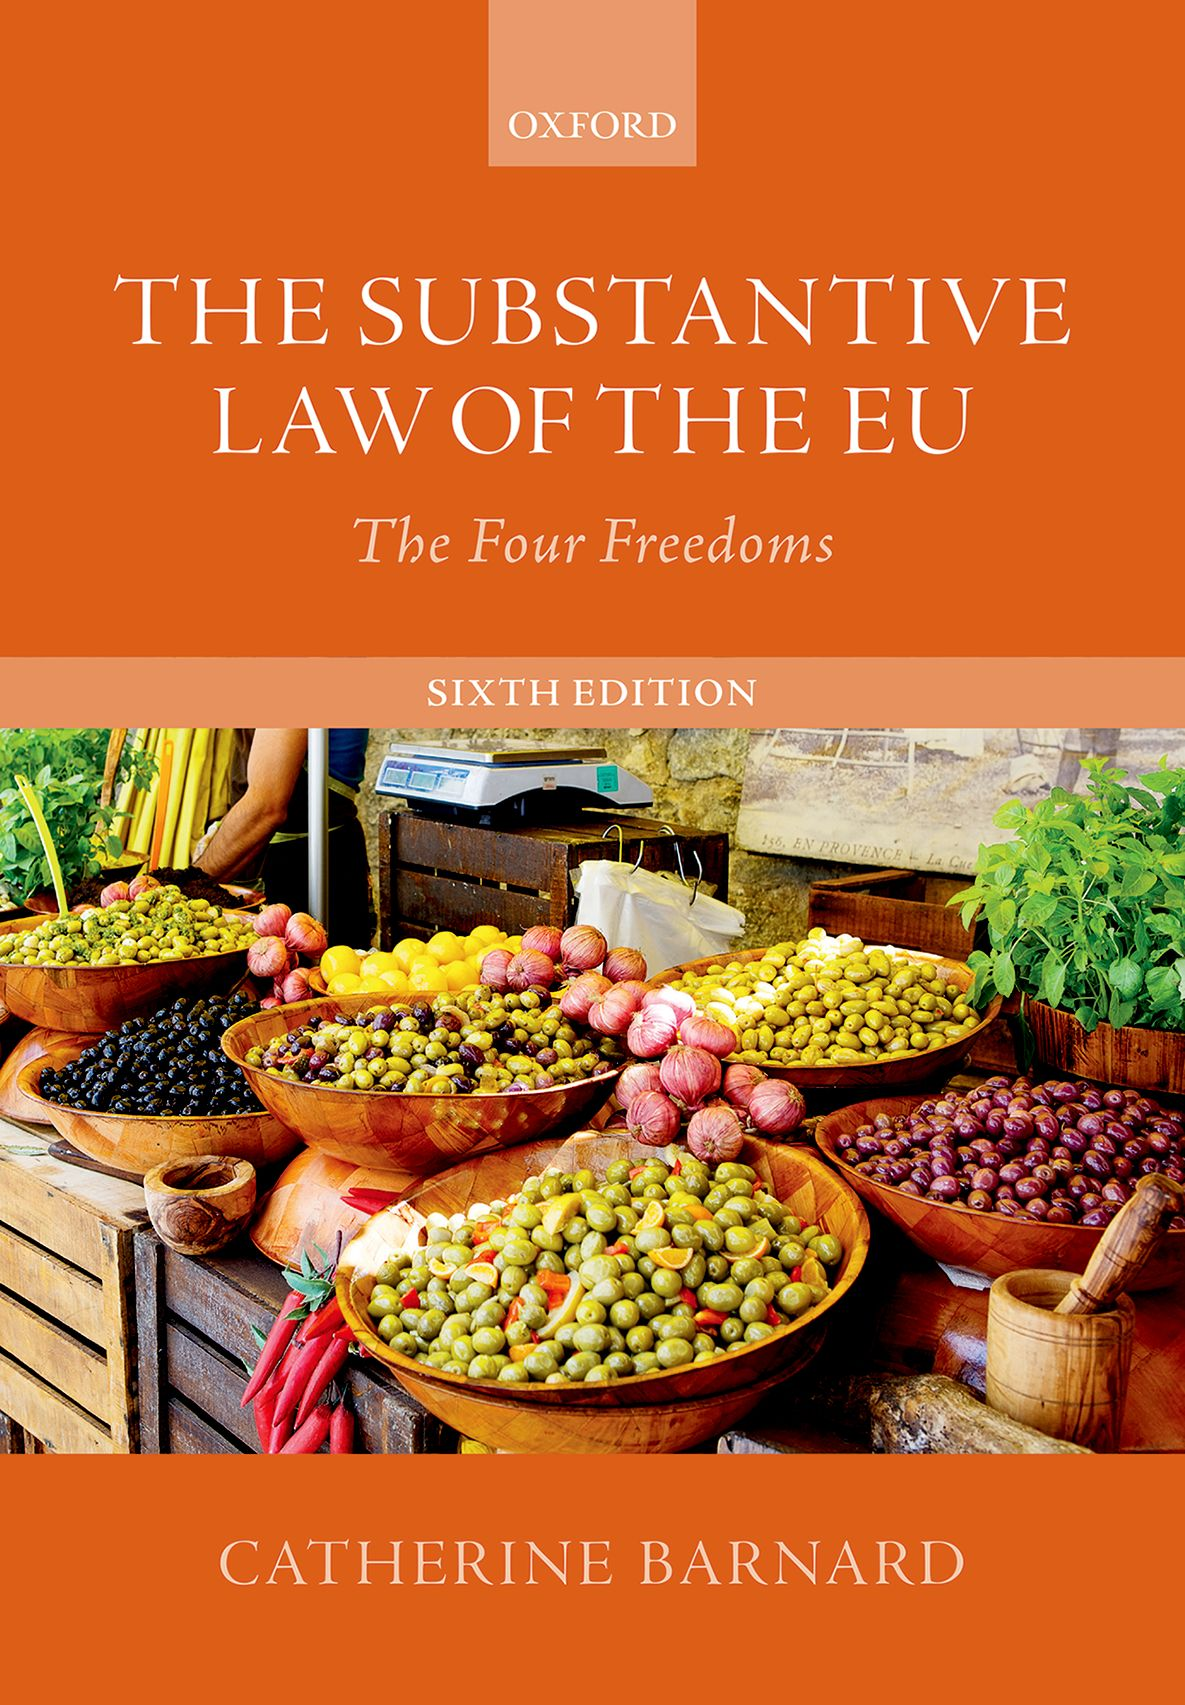 The Substantive Law of the EU 6e Instructor Resources